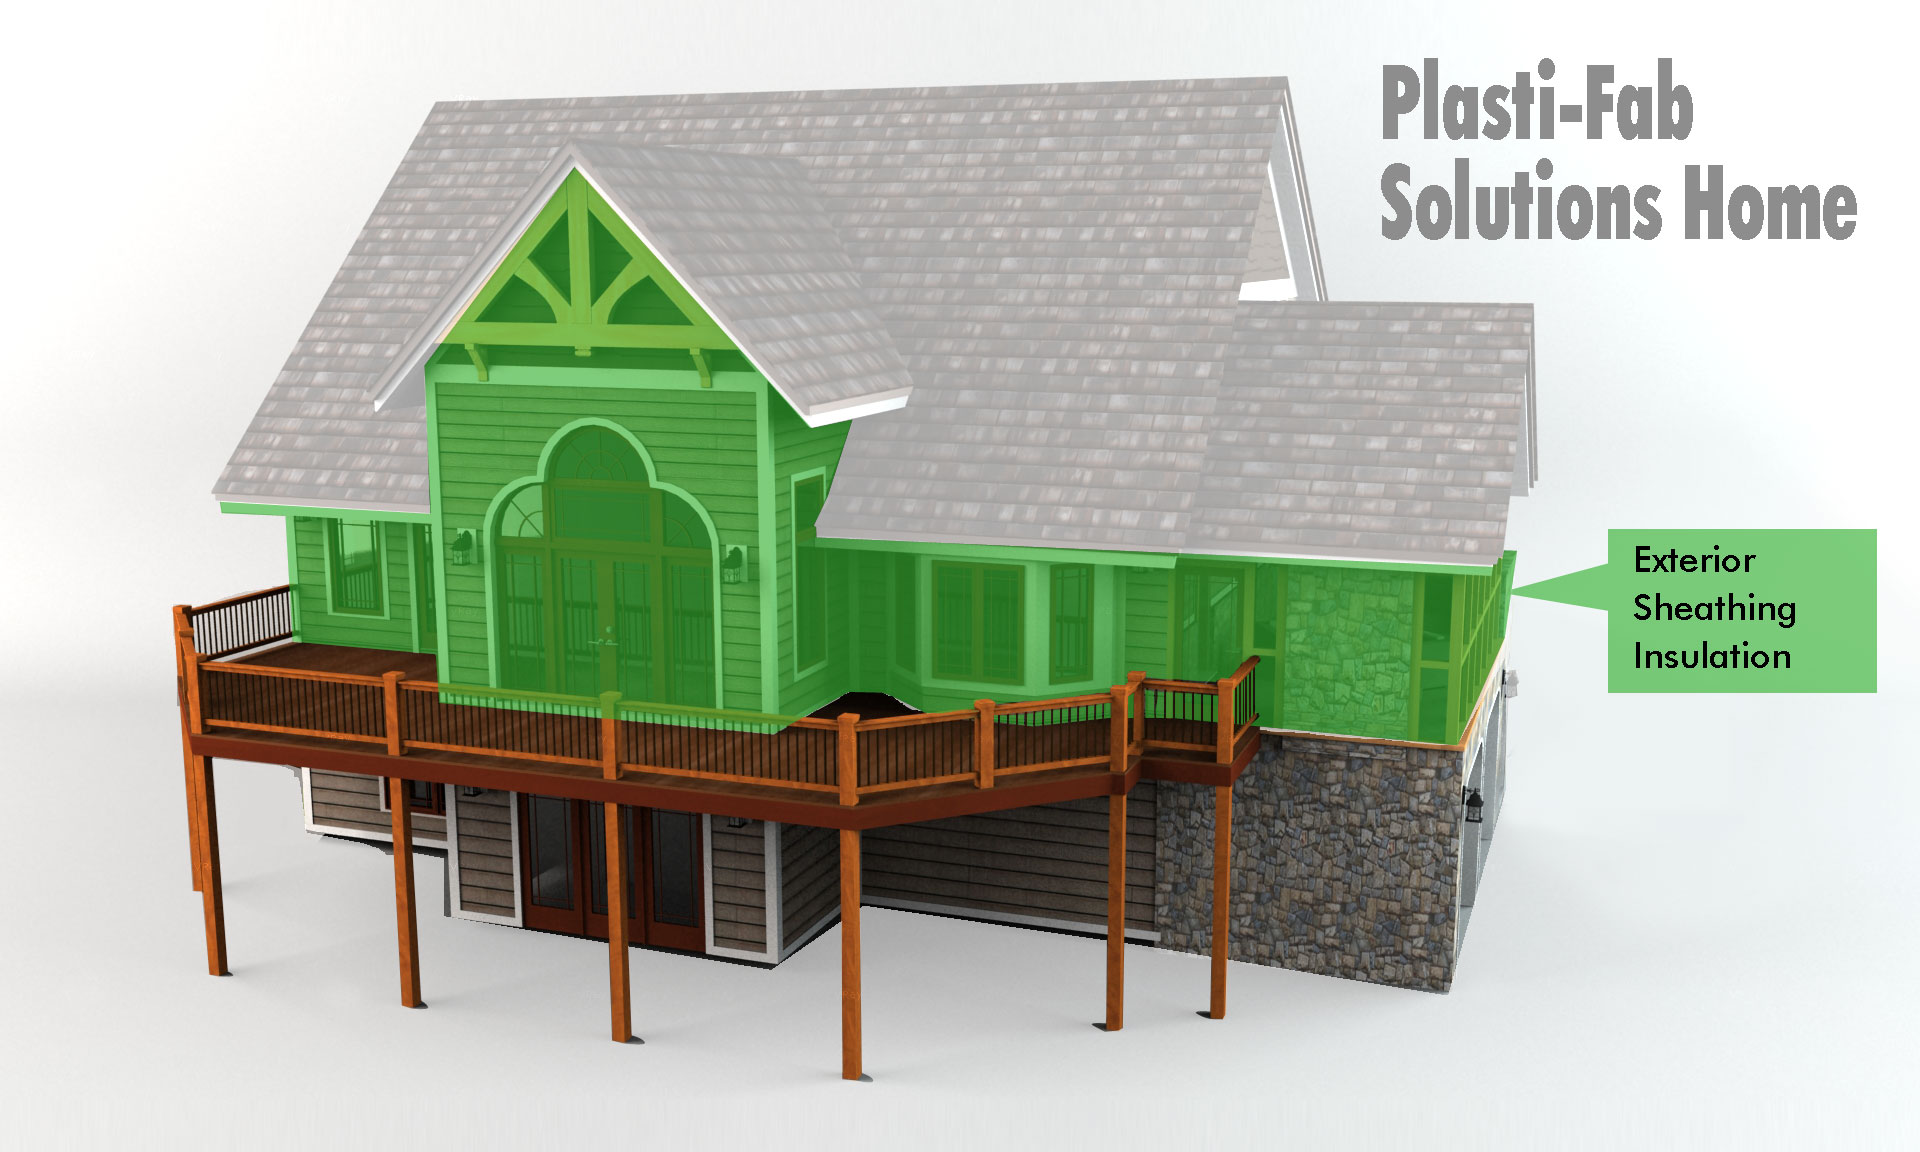 Plasti fab solutions home exterior sheathing insulation for Exterior wall sheeting